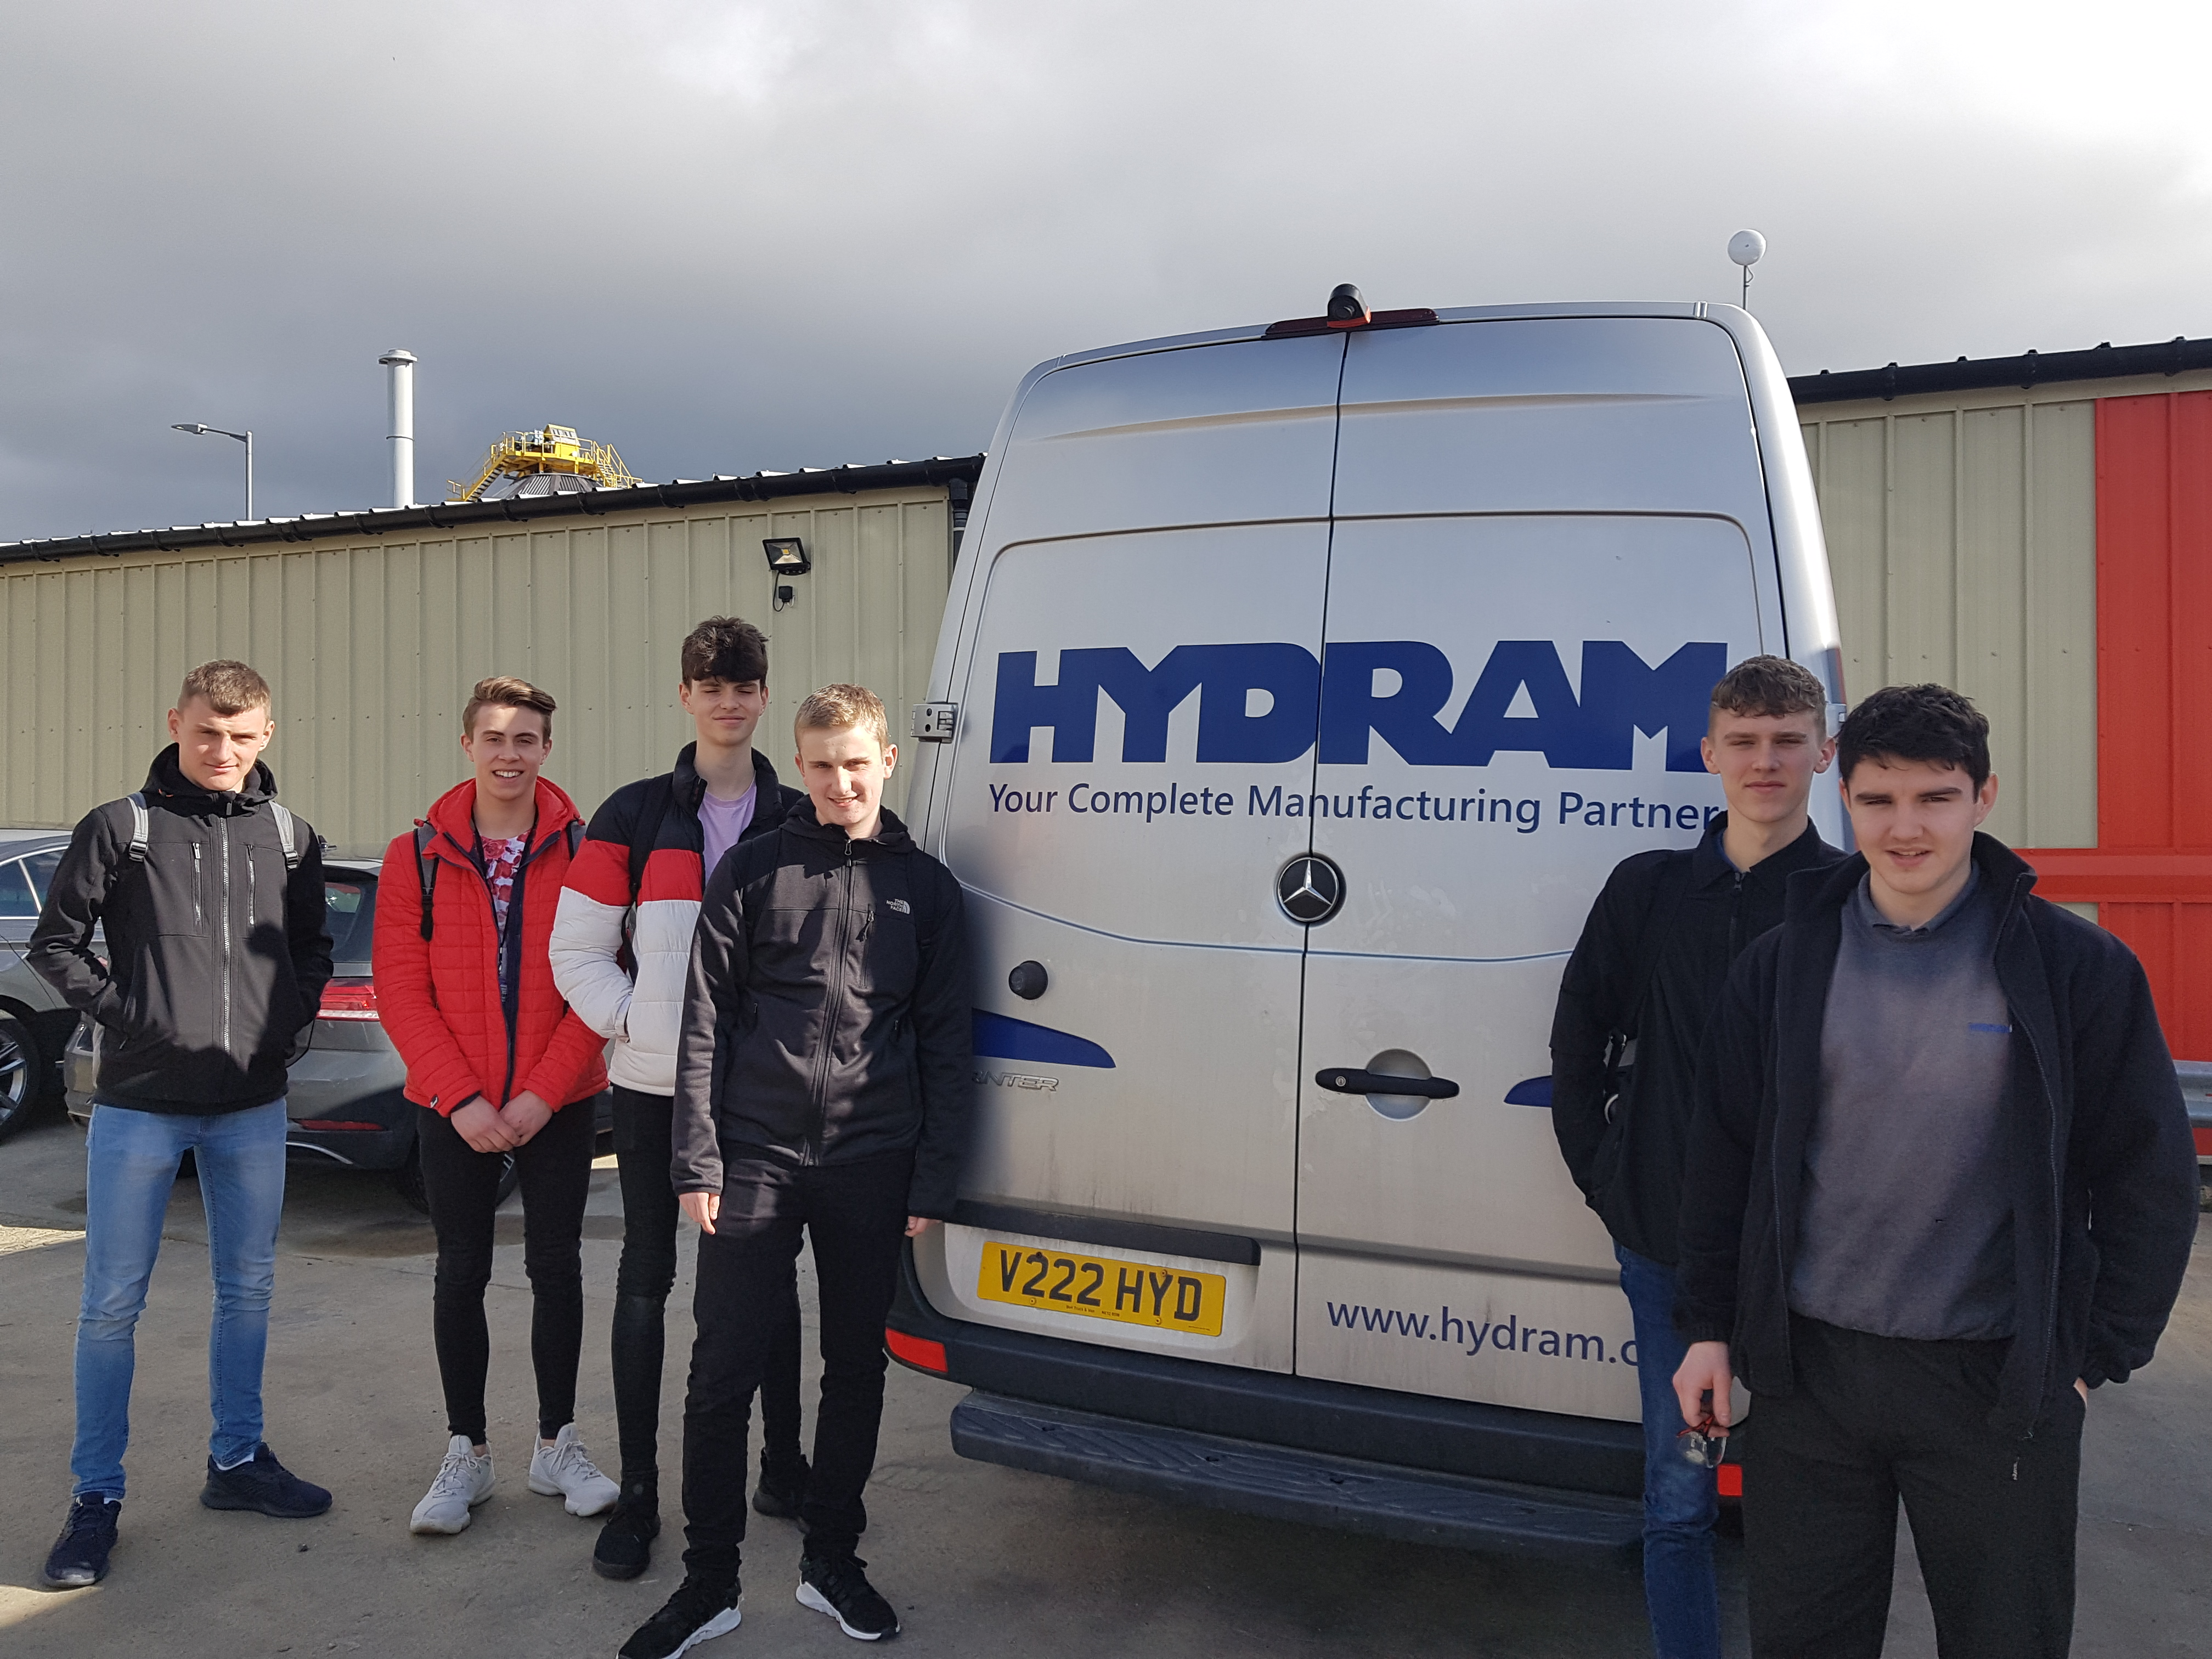 Future engineers given tour of Hydram by former QE student